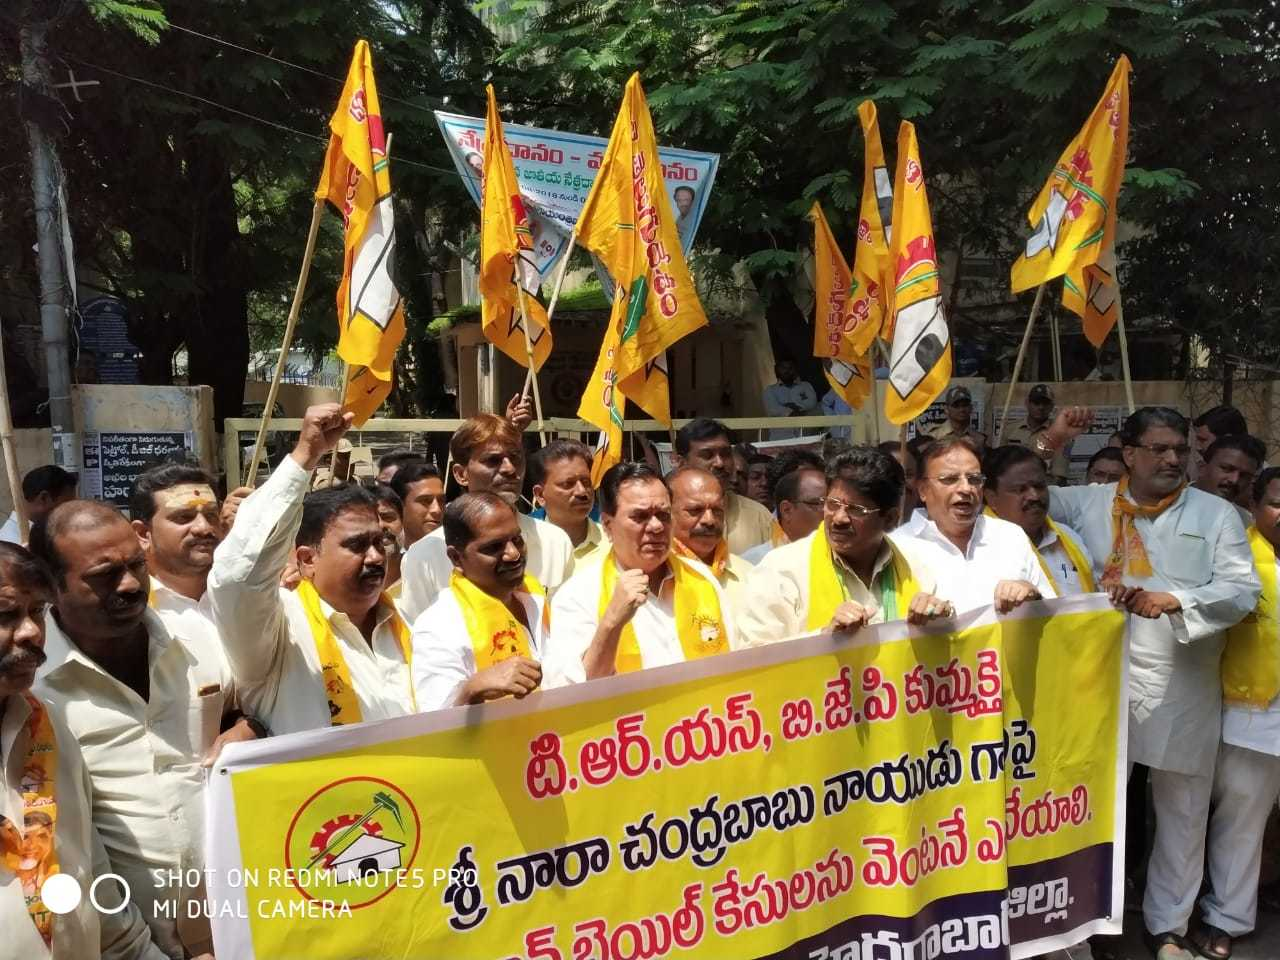 TDP members staged protests against the warrants in Hyderabad on September 14